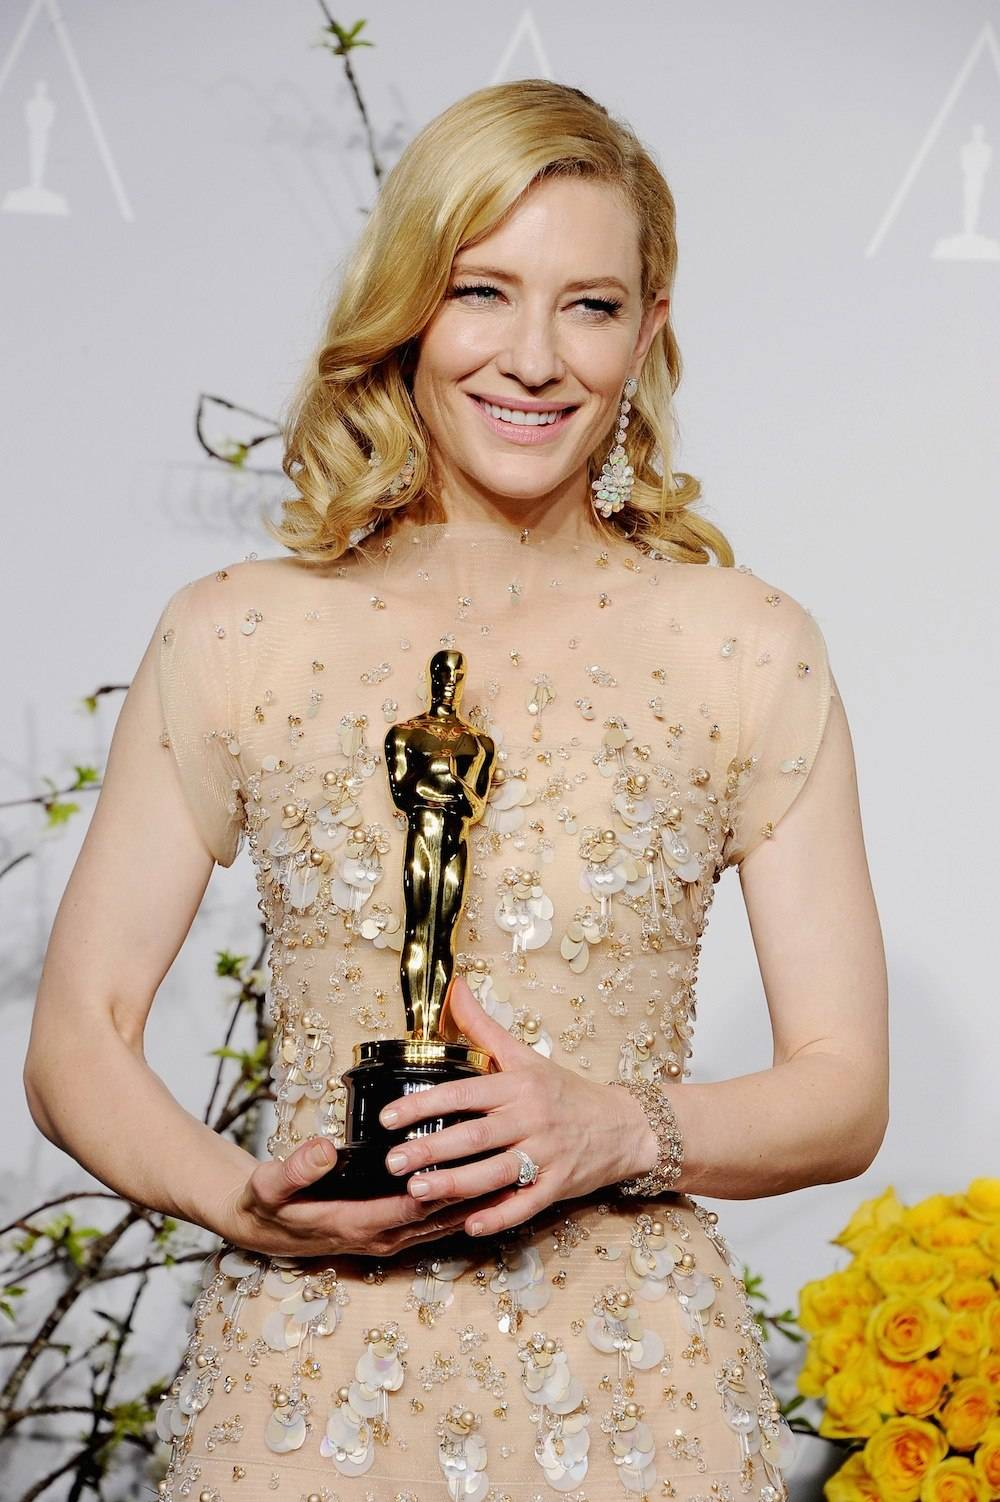 86th Annual Academy Awards - Press Room